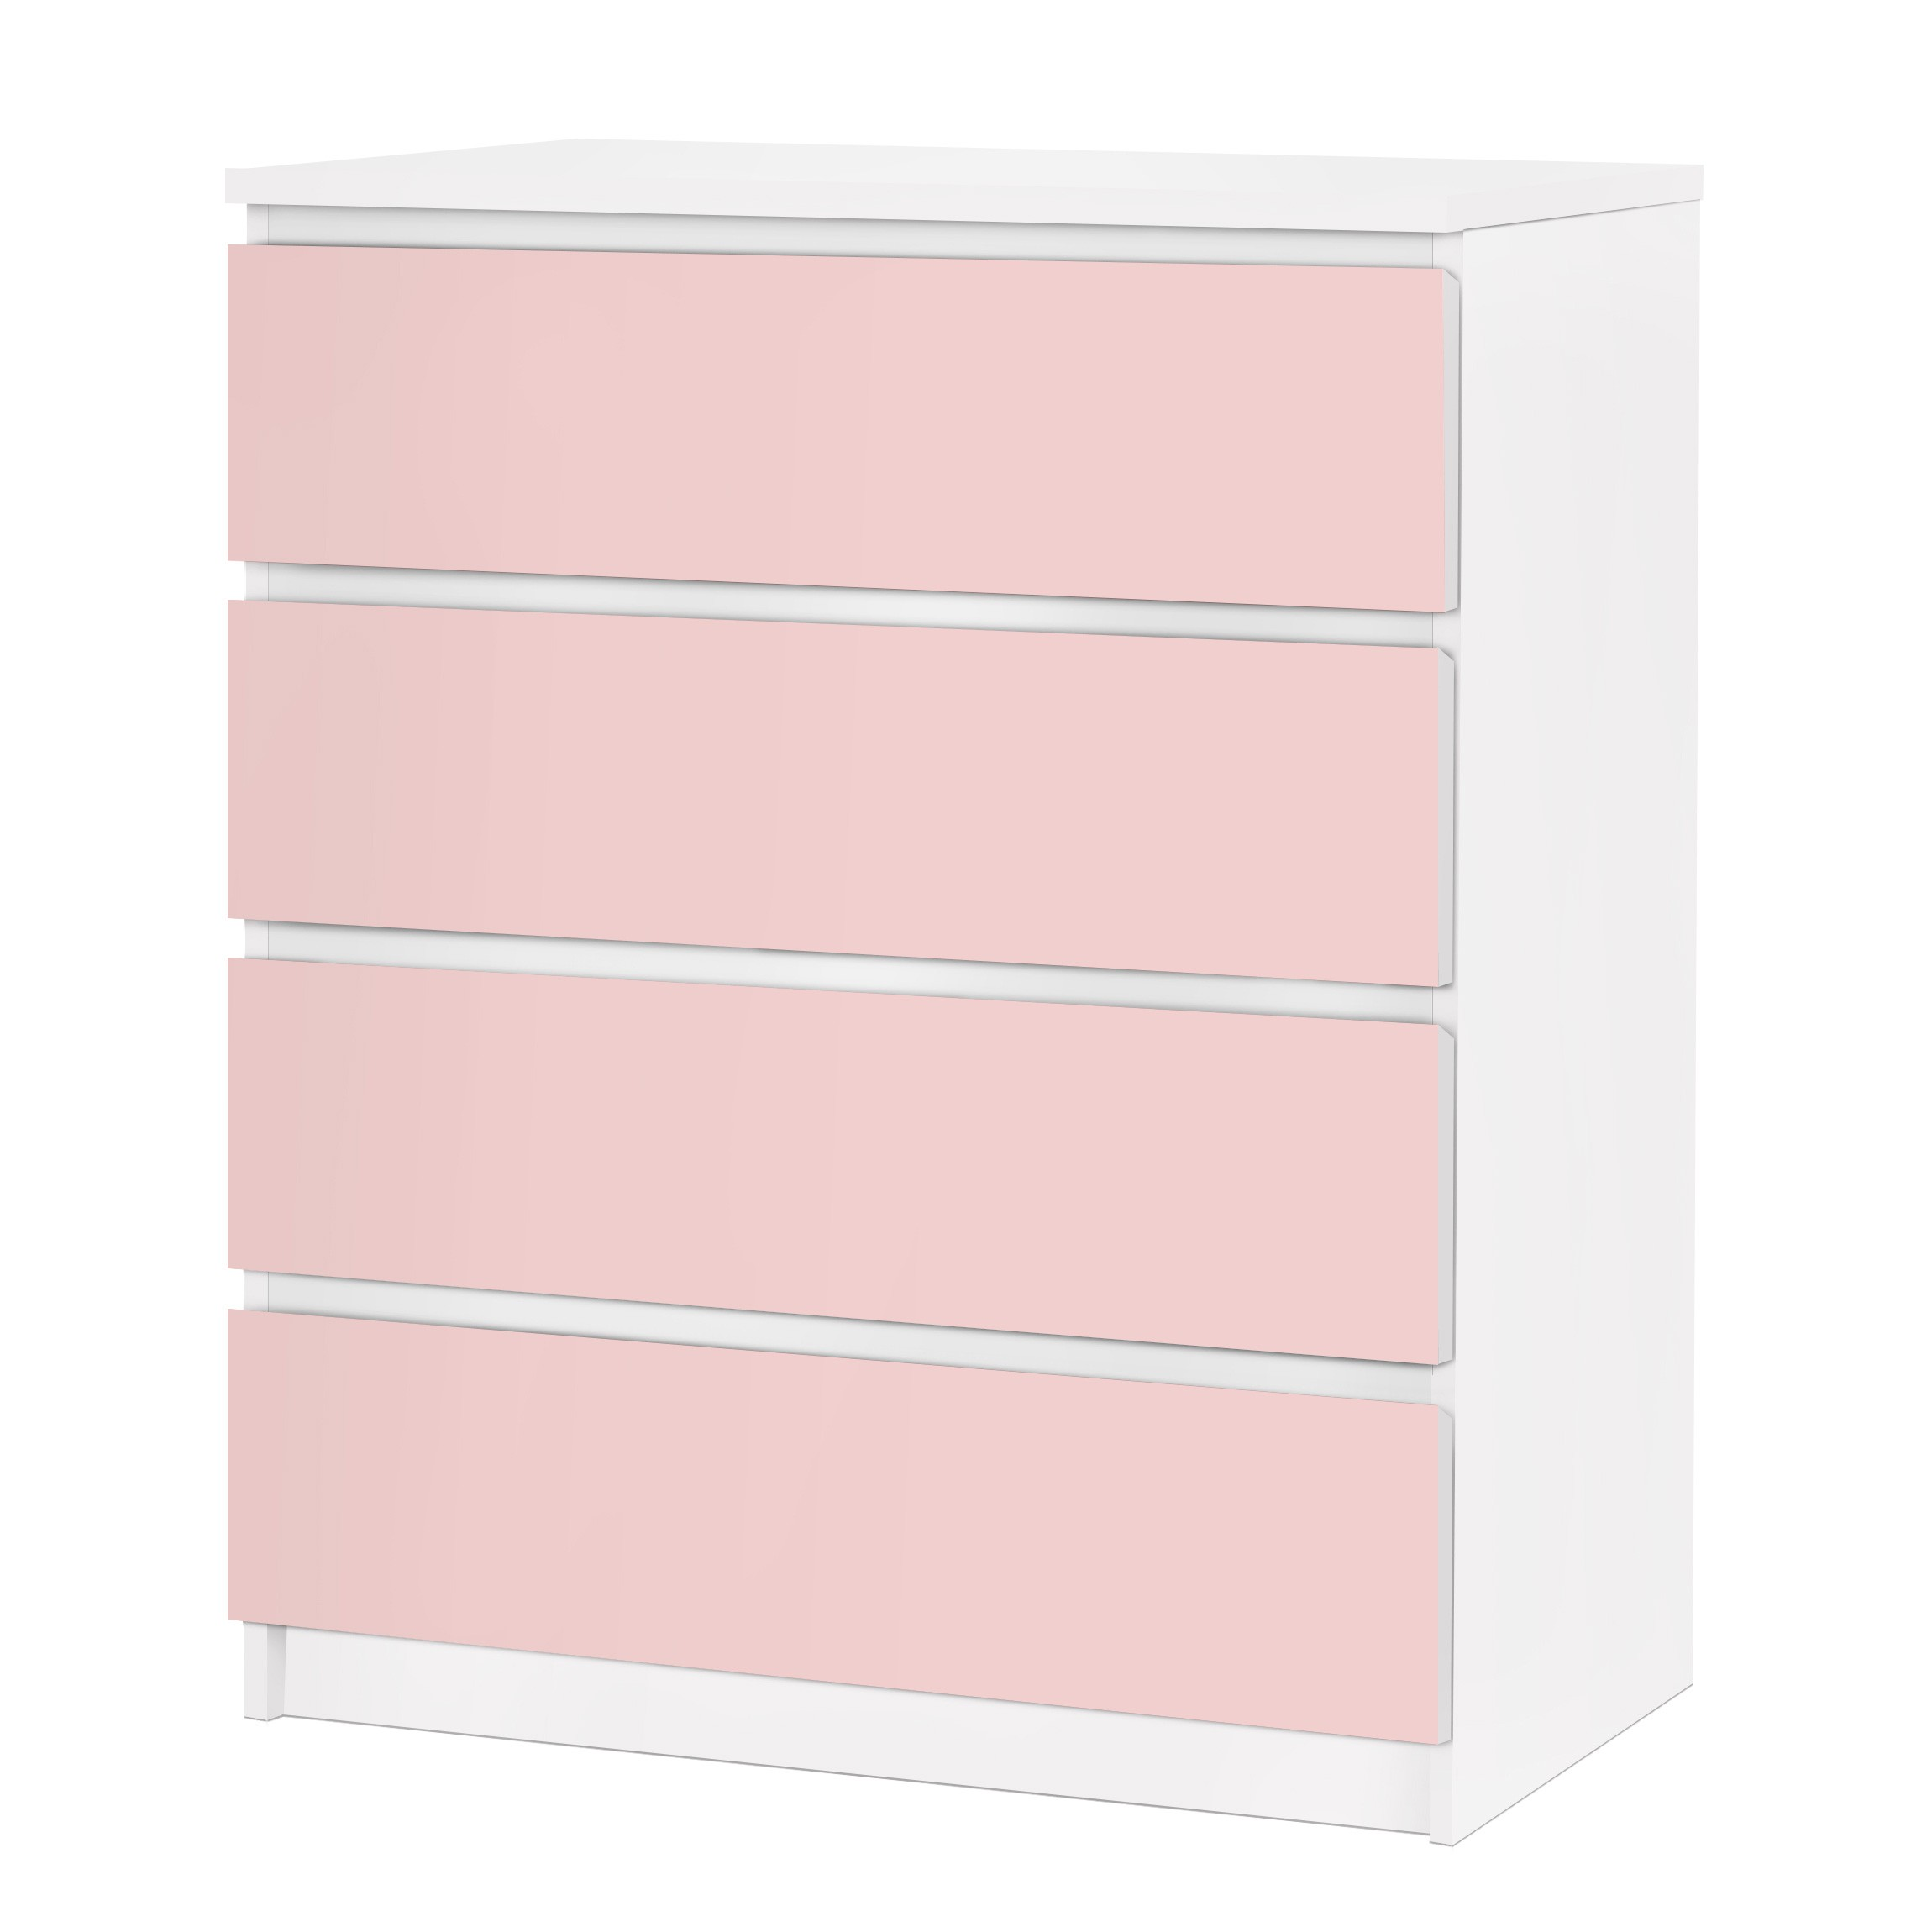 m belfolie f r ikea malm kommode selbstklebende folie colour rose. Black Bedroom Furniture Sets. Home Design Ideas